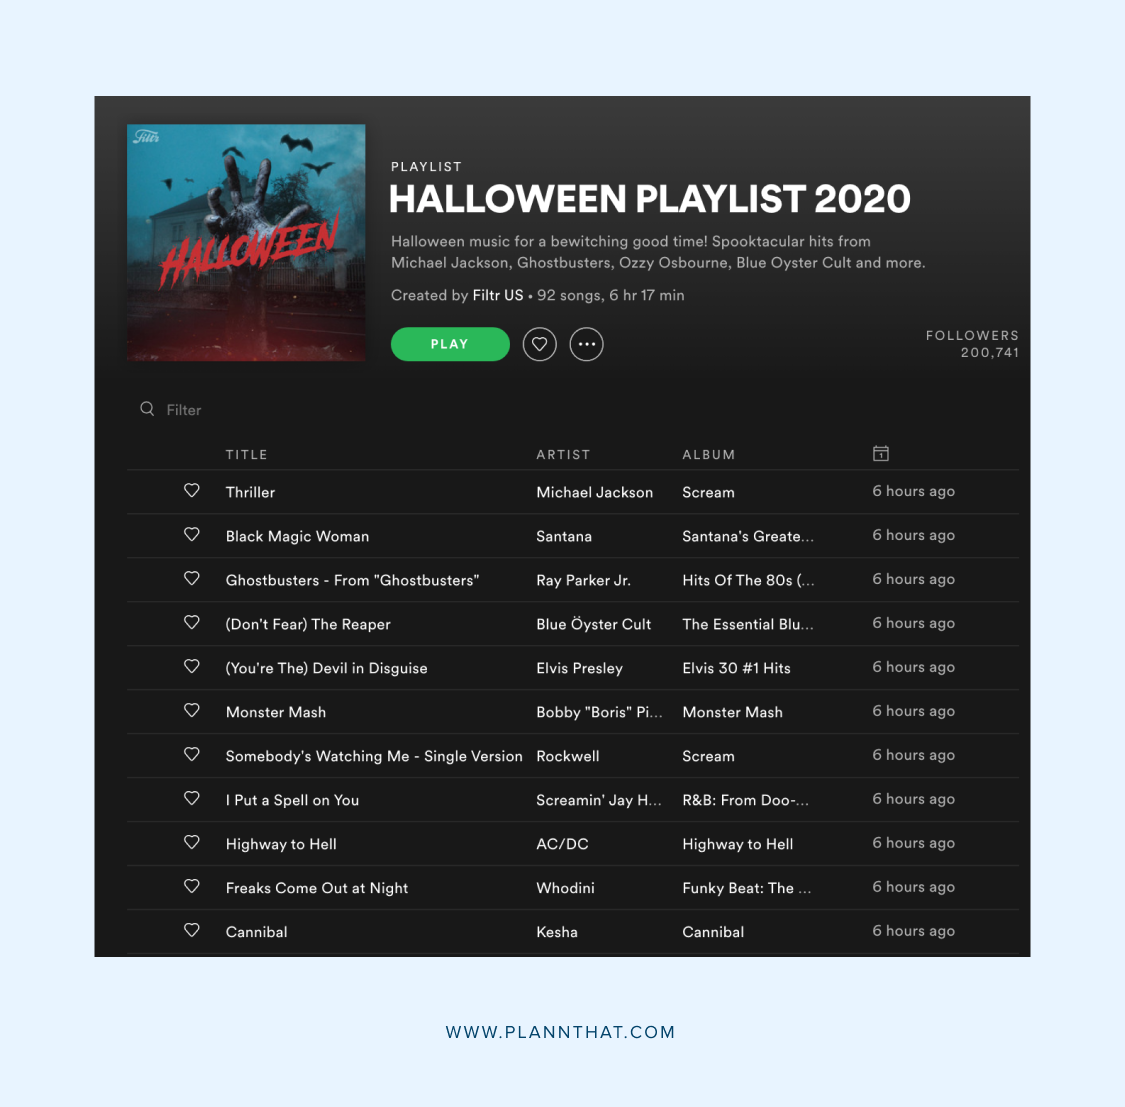 7 Halloween content ideas that will give you the highest engagement